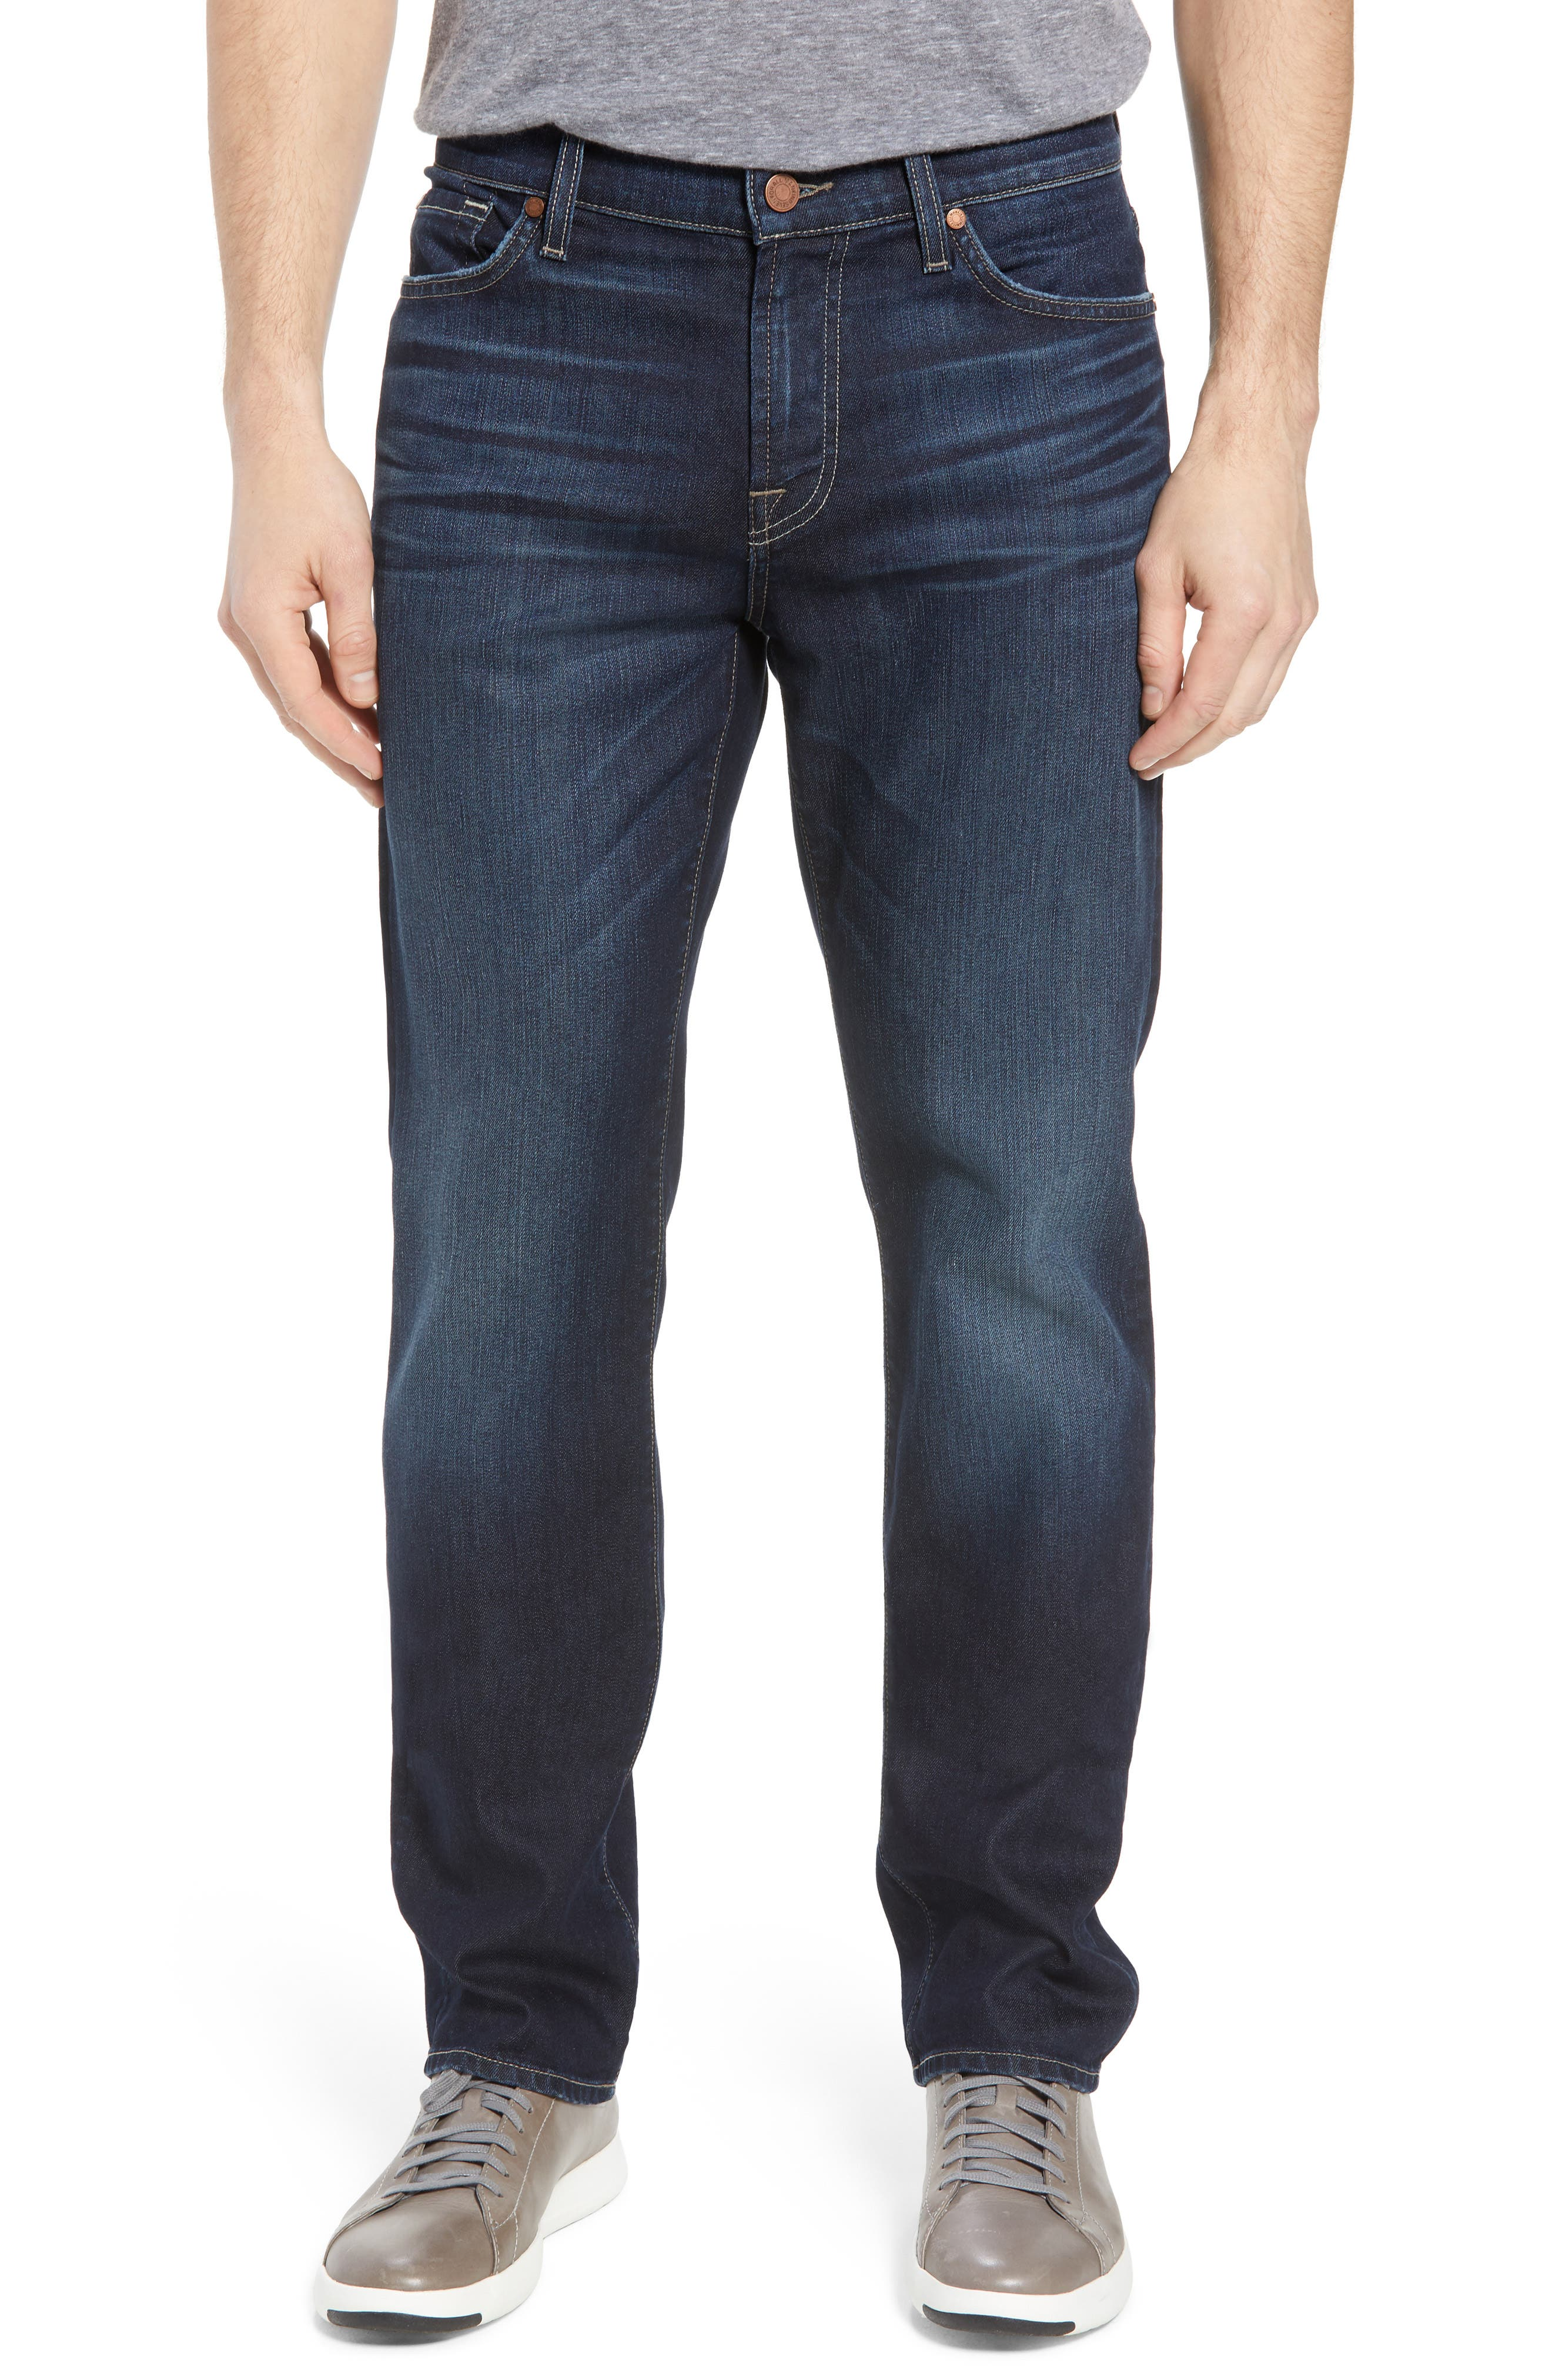 Airweft Standard Straight Leg Jeans,                             Main thumbnail 1, color,                             405